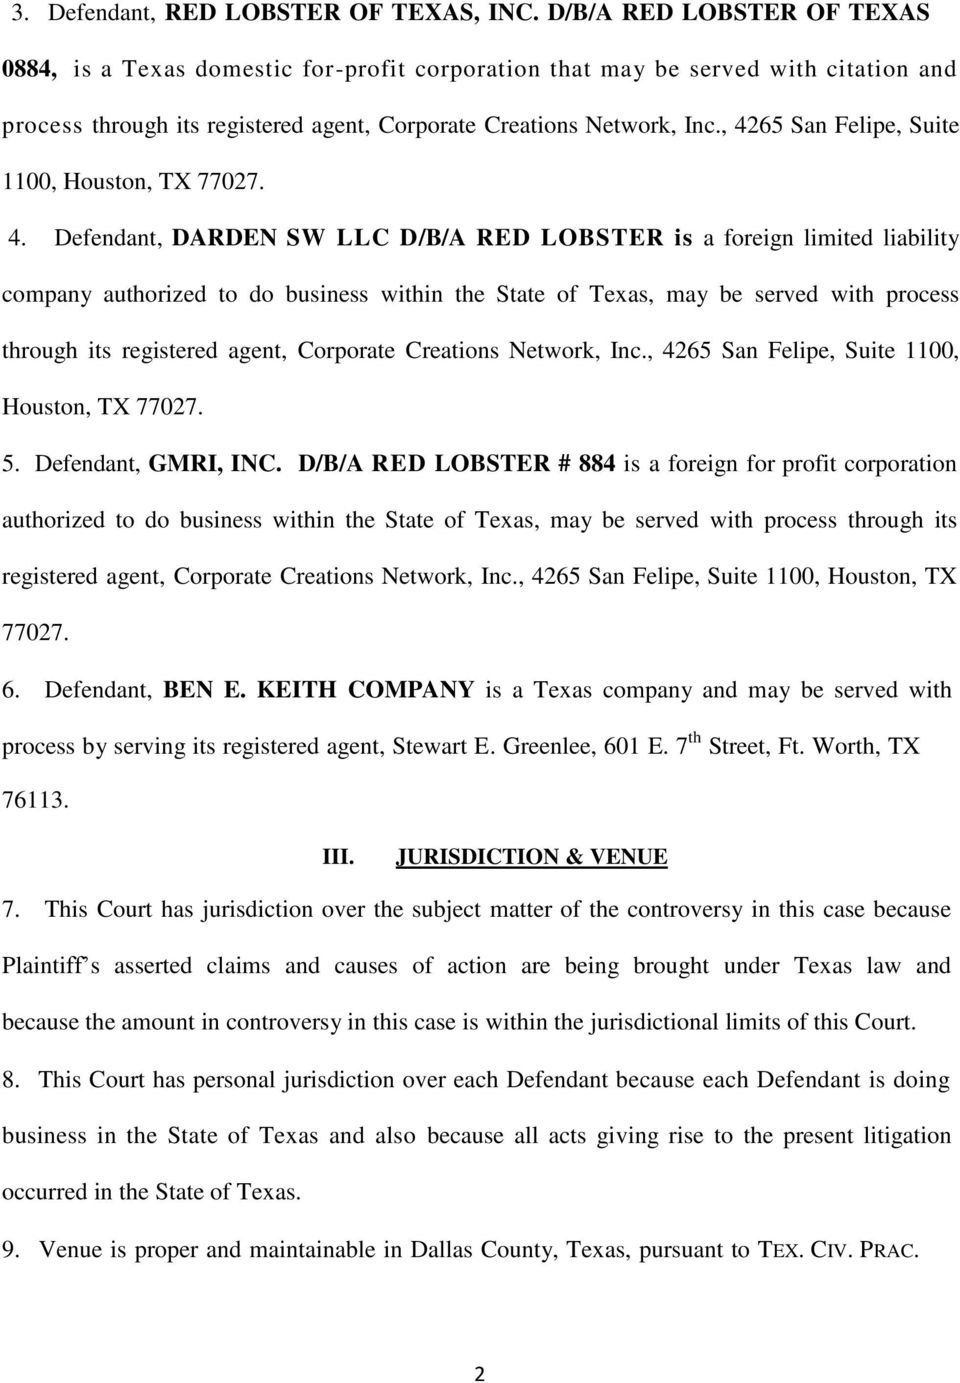 , 4265 San Felipe, Suite 1100, Houston, TX 77027. 4. Defendant, DARDEN SW LLC D/B/A RED LOBSTER is a foreign limited liability company authorized to do business within the State of Texas, may be